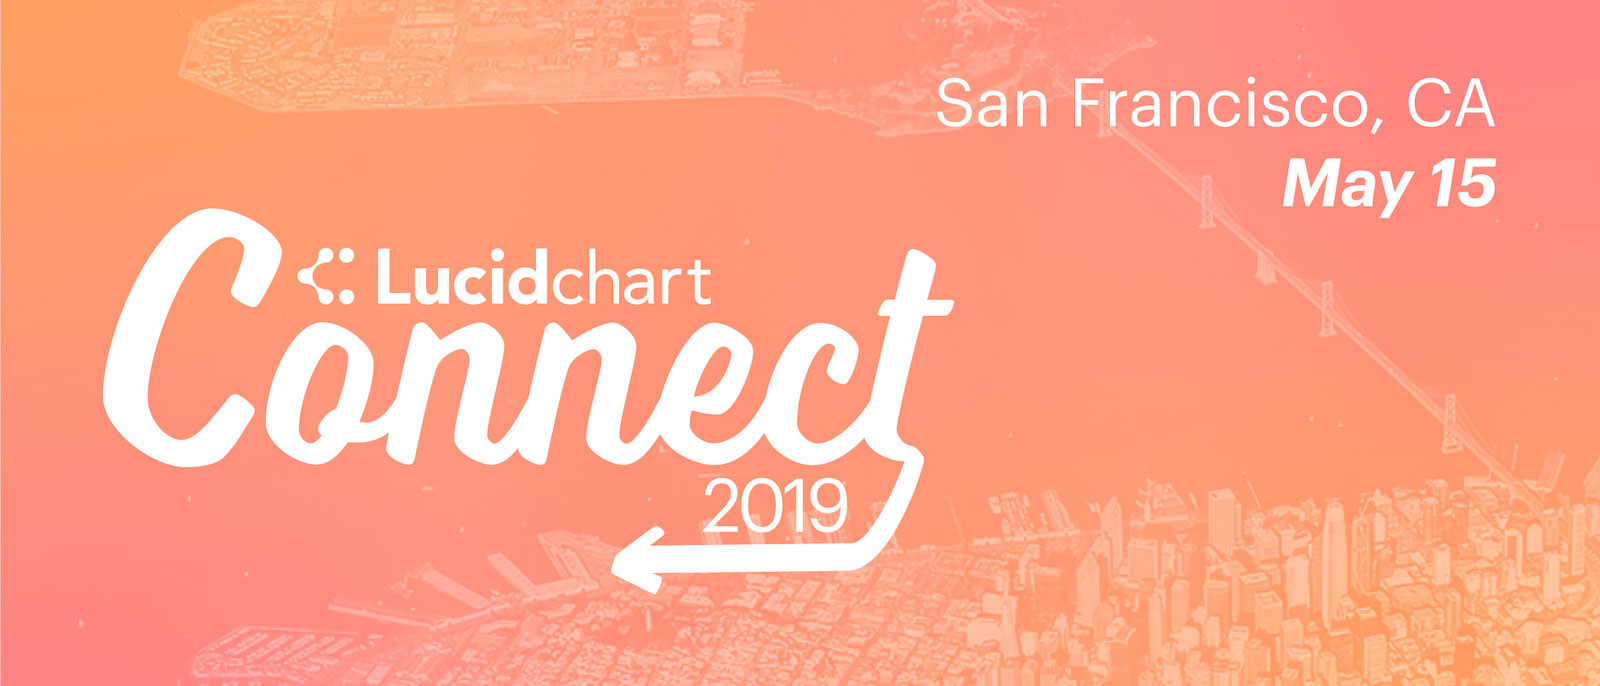 Lucidchart connect San Francisco May 15th 2019